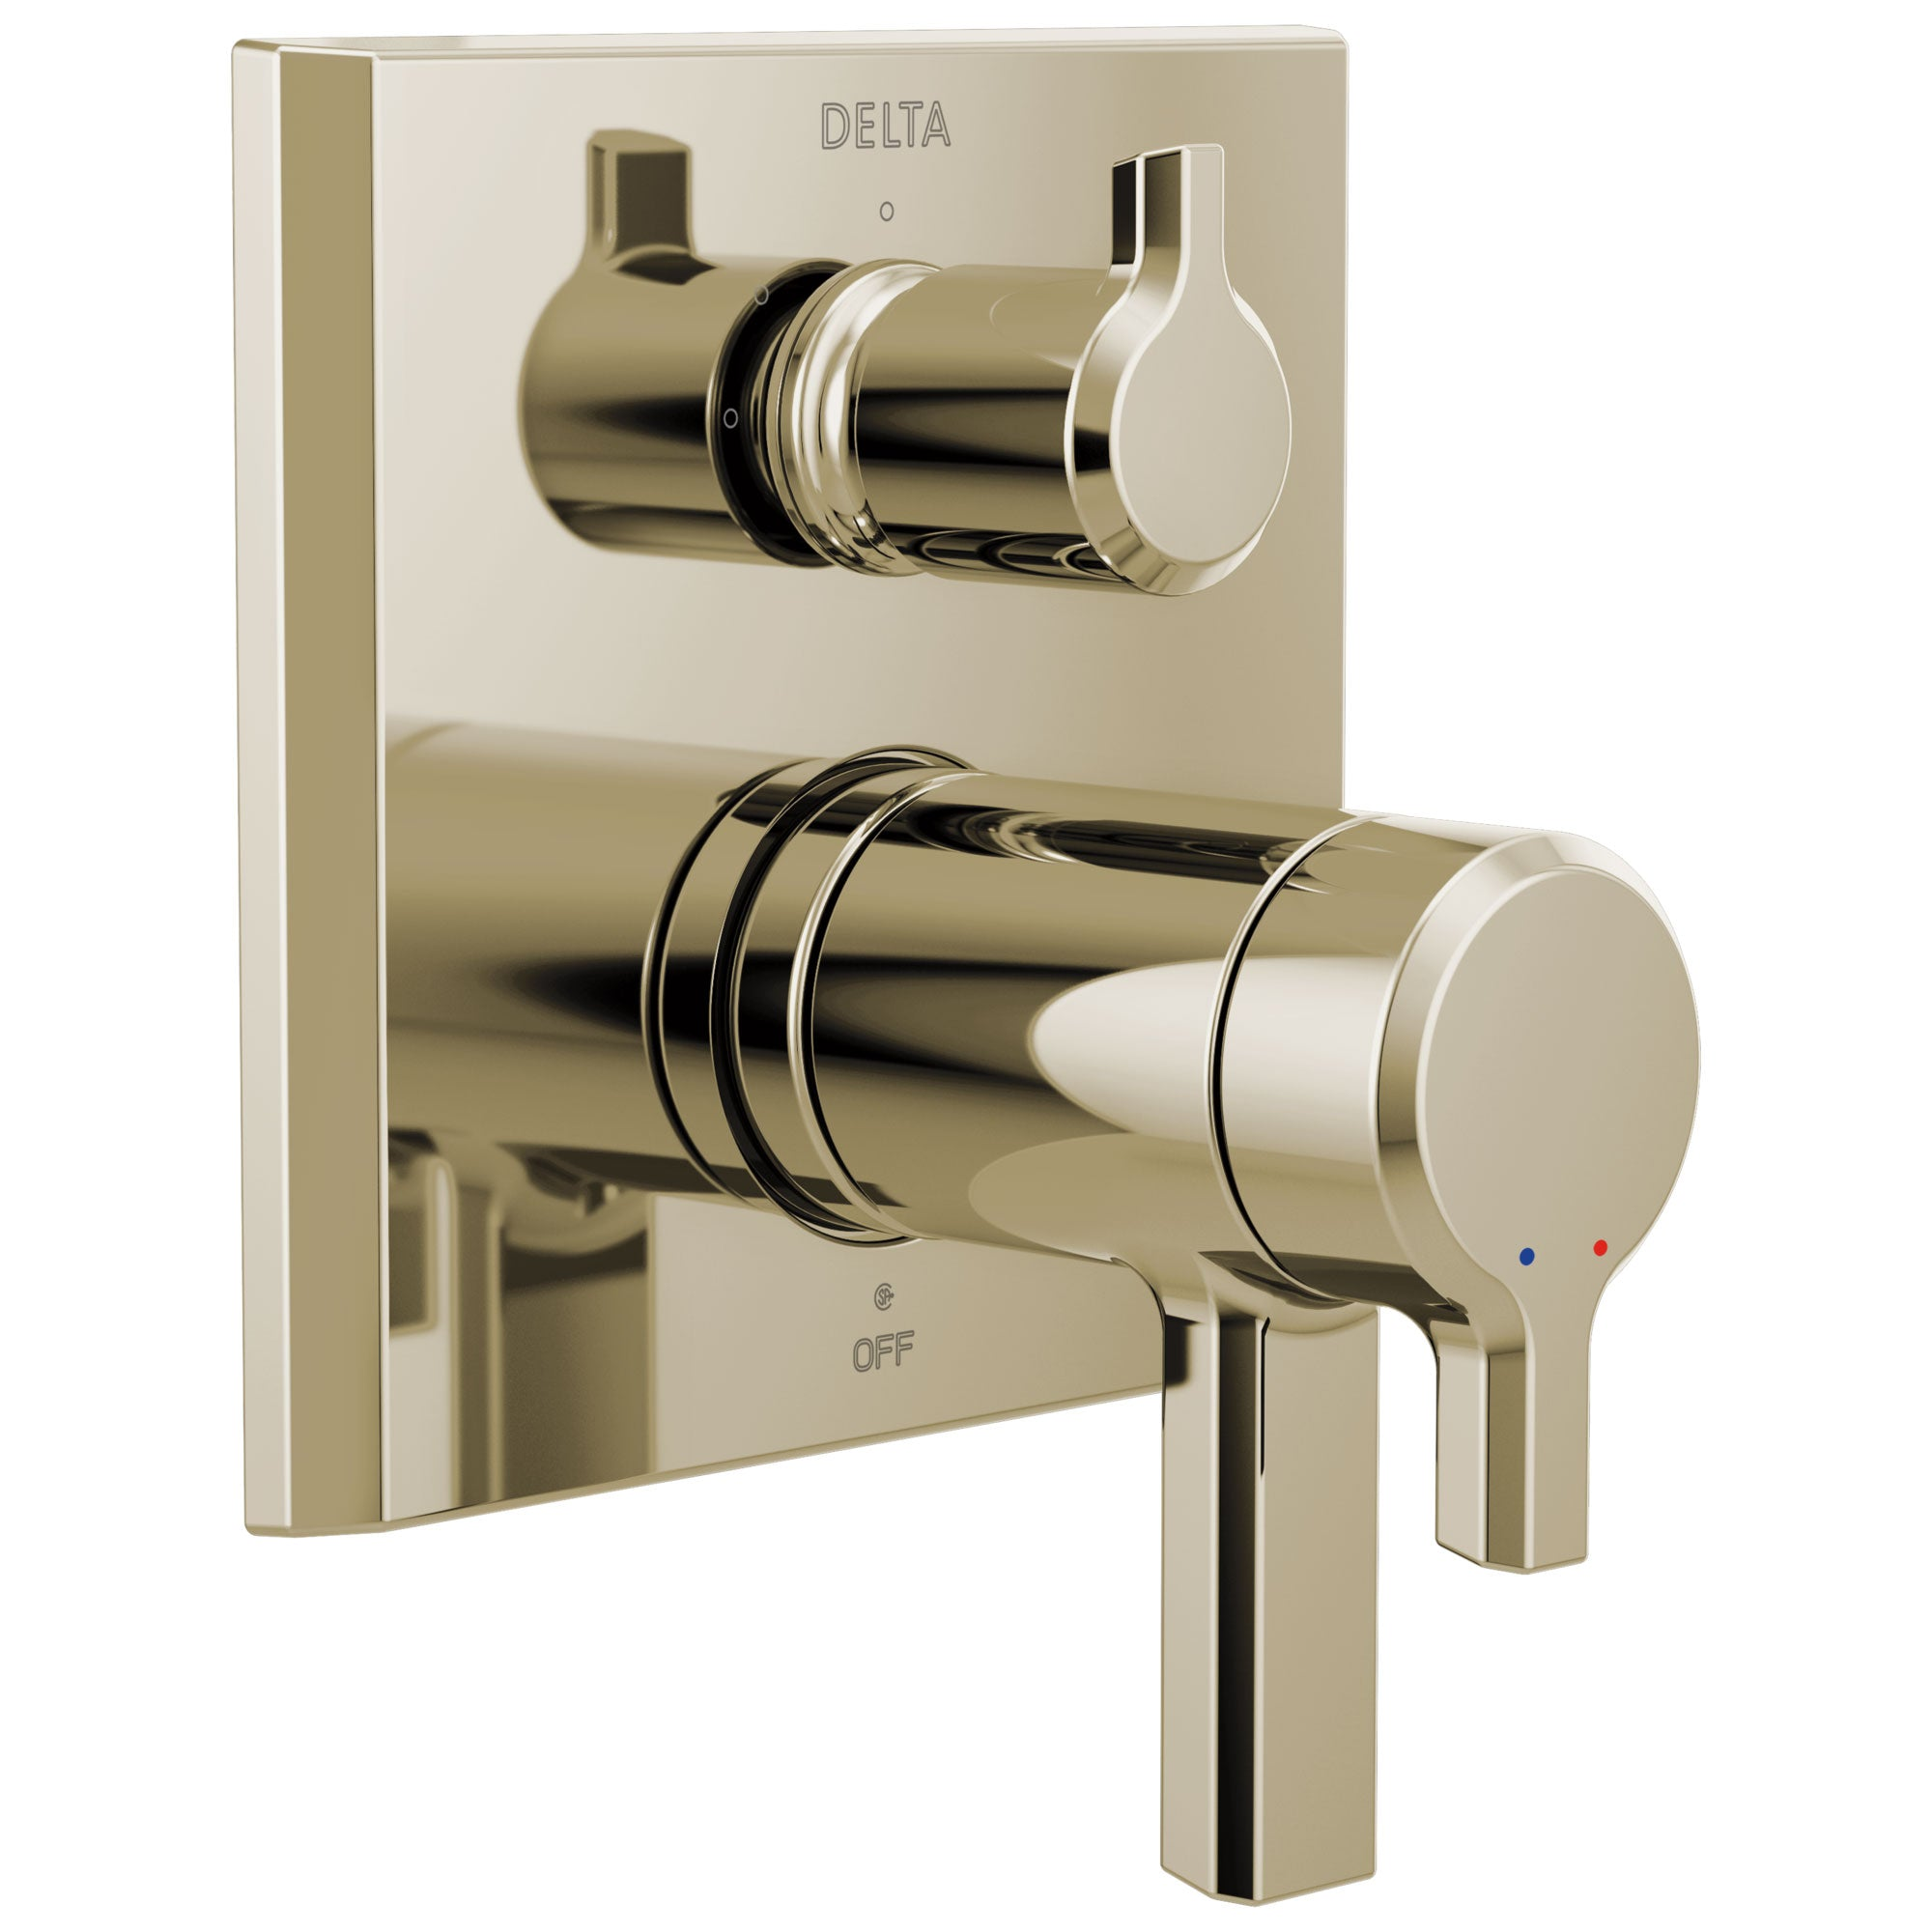 Delta Pivotal Polished Nickel Finish TempAssure 17T Series Shower Control Trim Kit with 3-Setting Integrated Diverter (Requires Valve) DT27T899PN